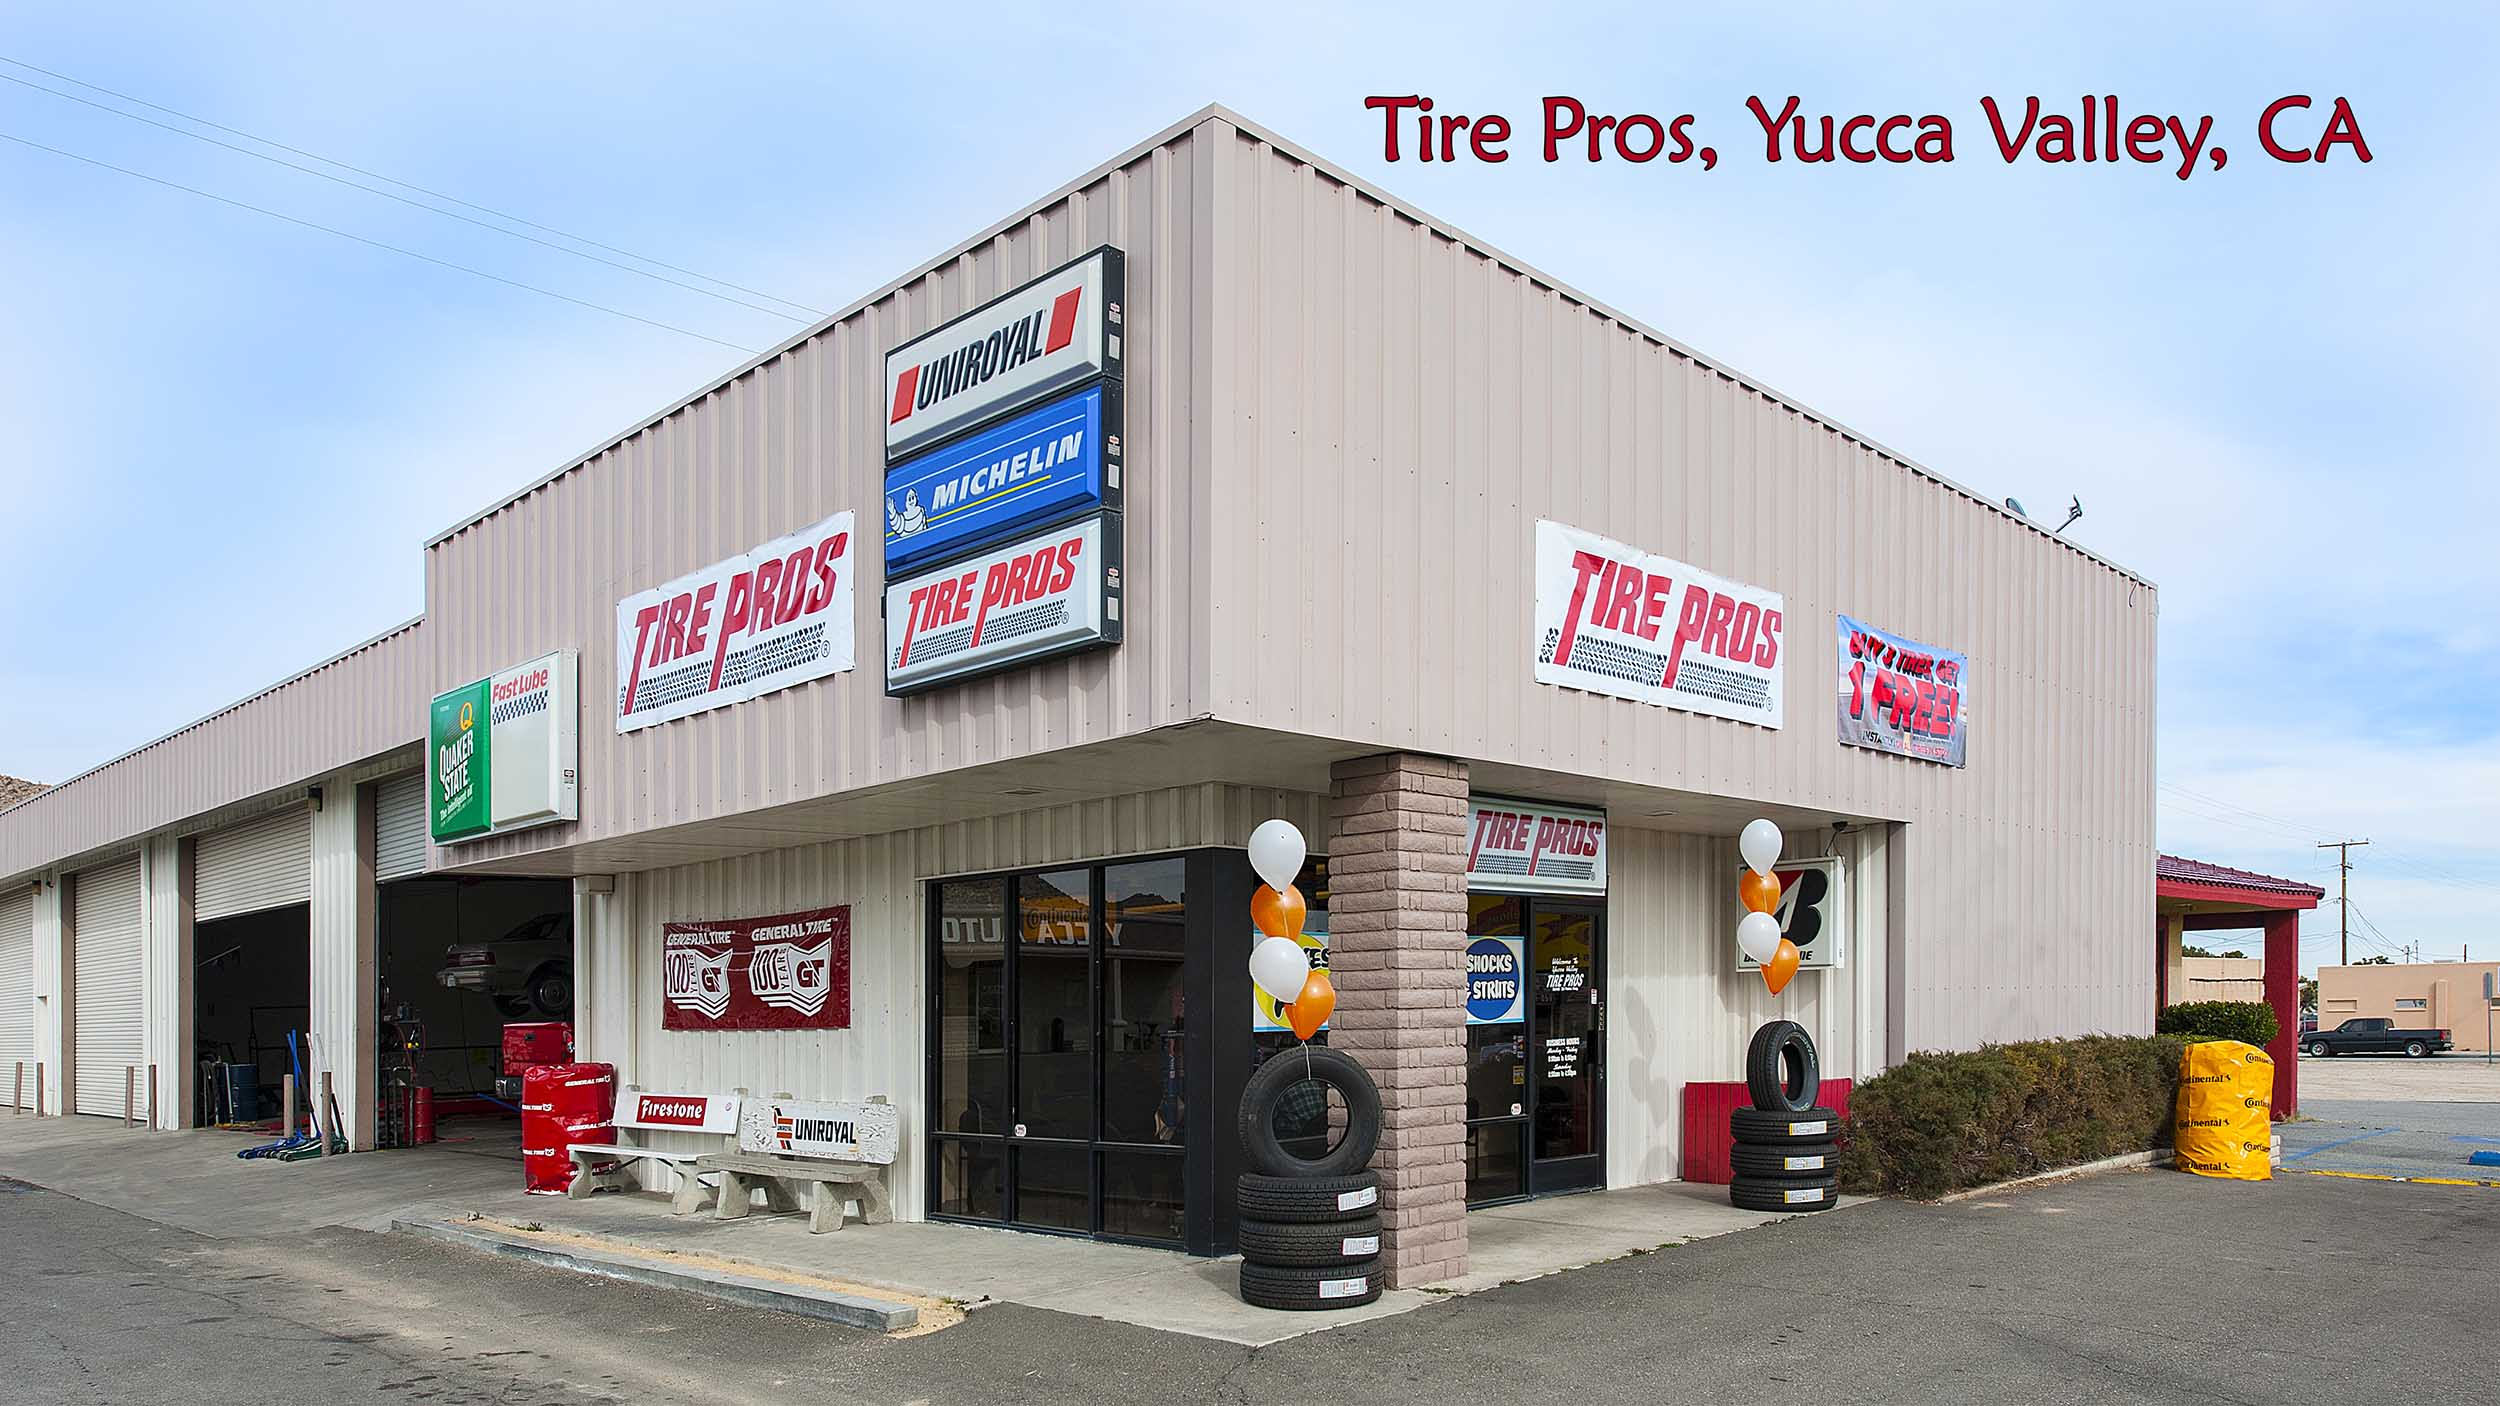 The Tire Pros, Yucca Valley, CA